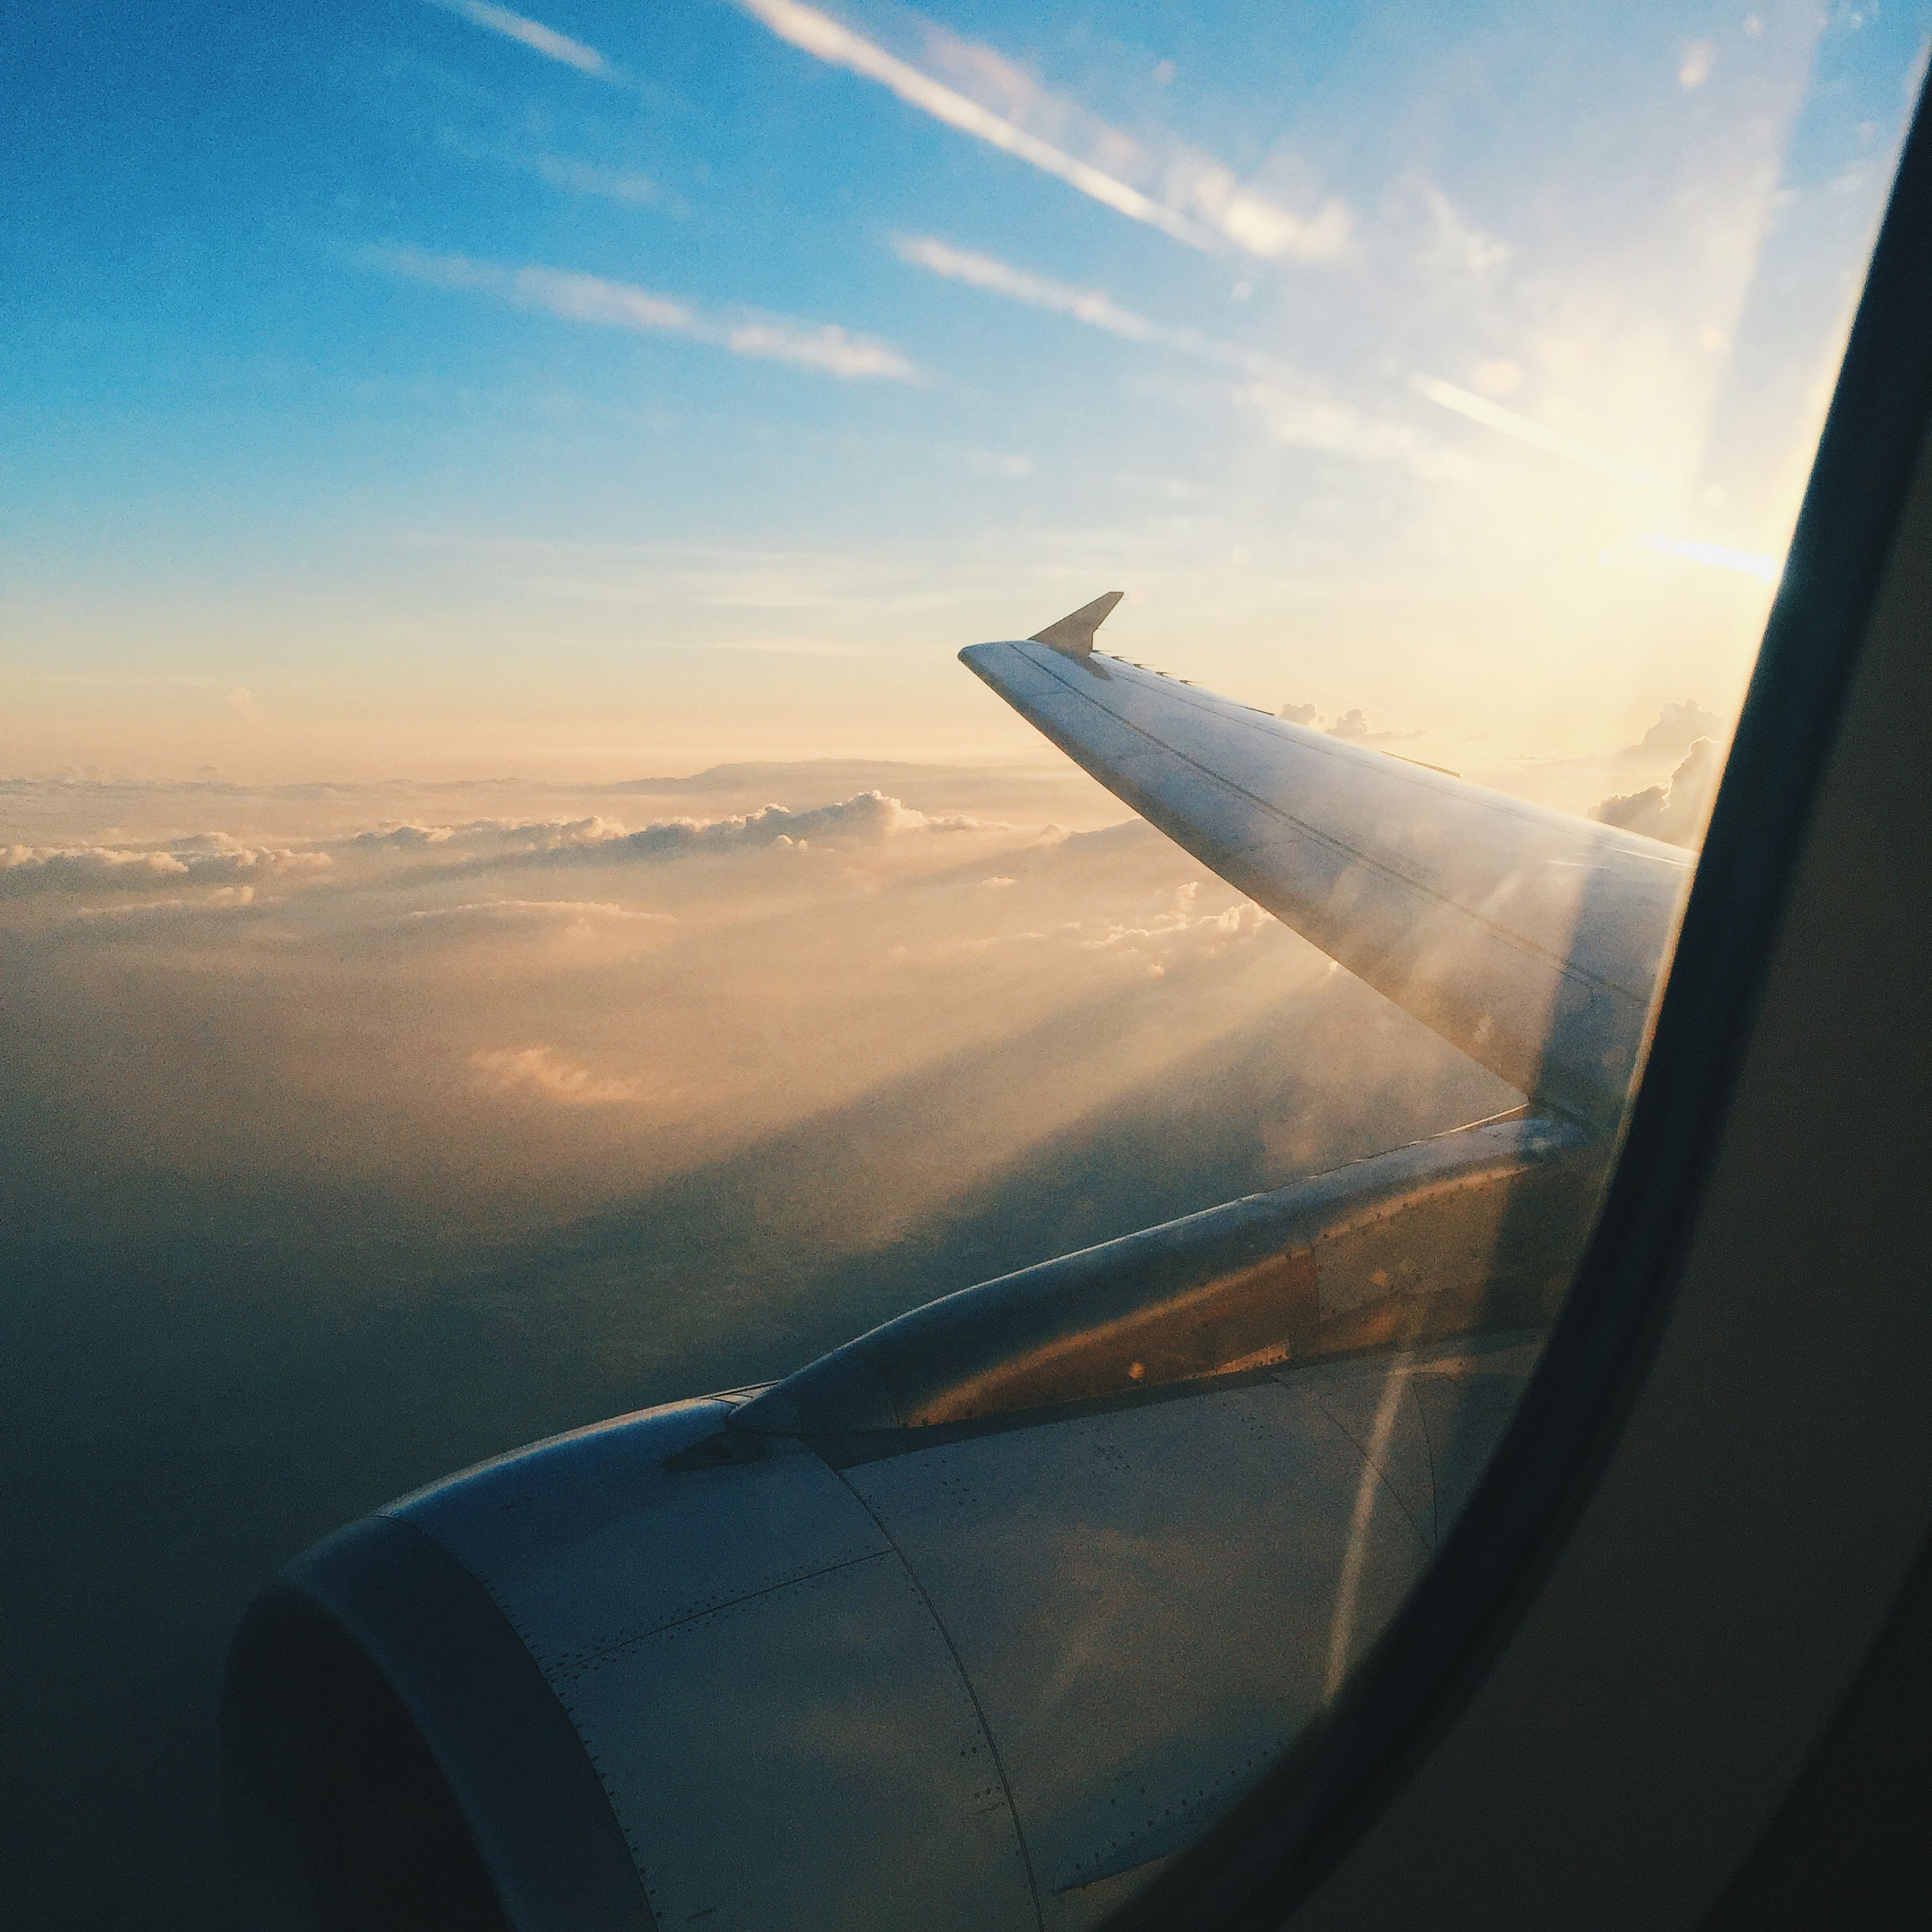 airplane, air vehicle, aircraft wing, transportation, mode of transport, aerial view, flying, part of, cropped, sky, travel, window, vehicle interior, journey, mid-air, cloud - sky, airplane wing, on the move, public transportation, glass - material